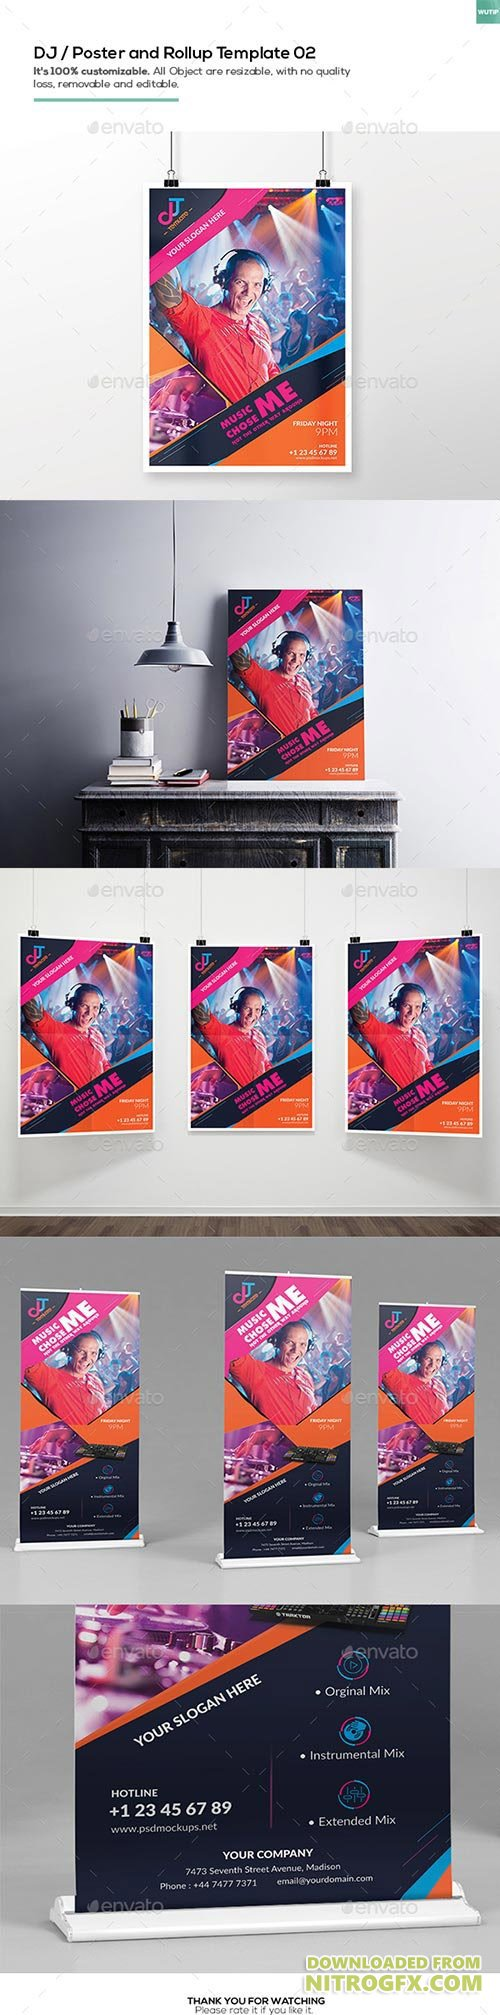 DJ/ A3 Poster and Rollup Template 02 16207453